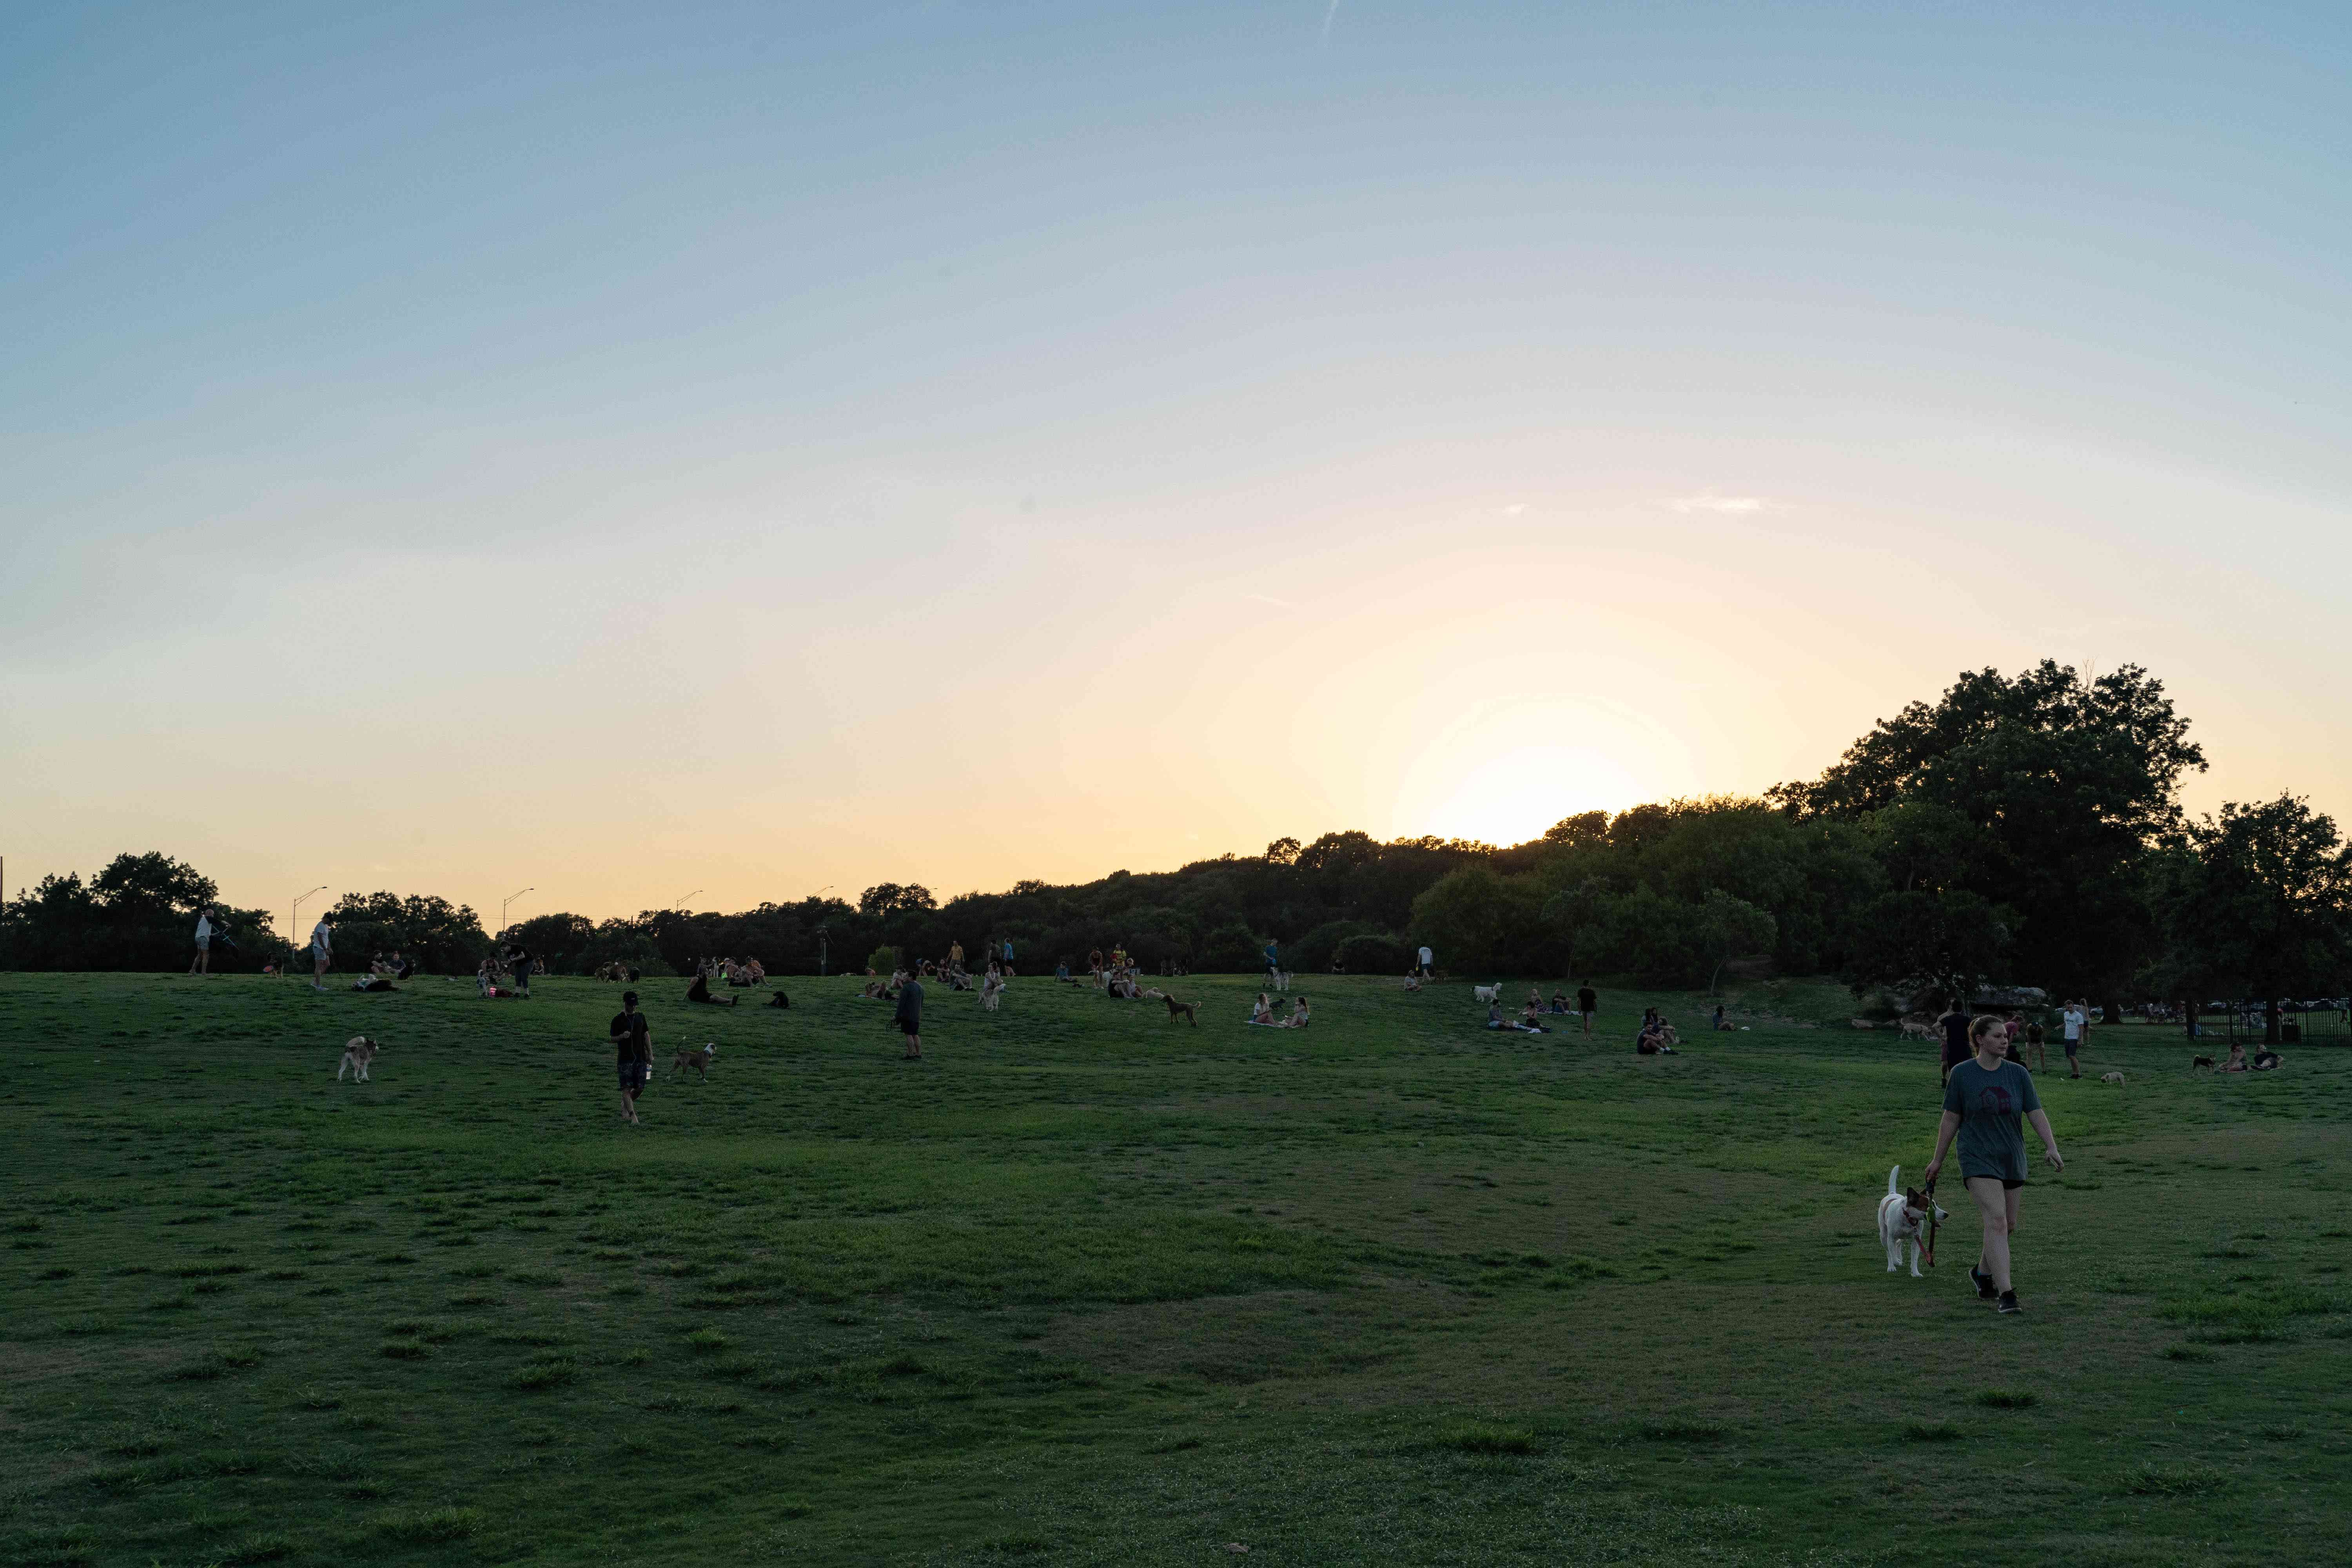 People walking through a grassy field in Zilker Park during sunset